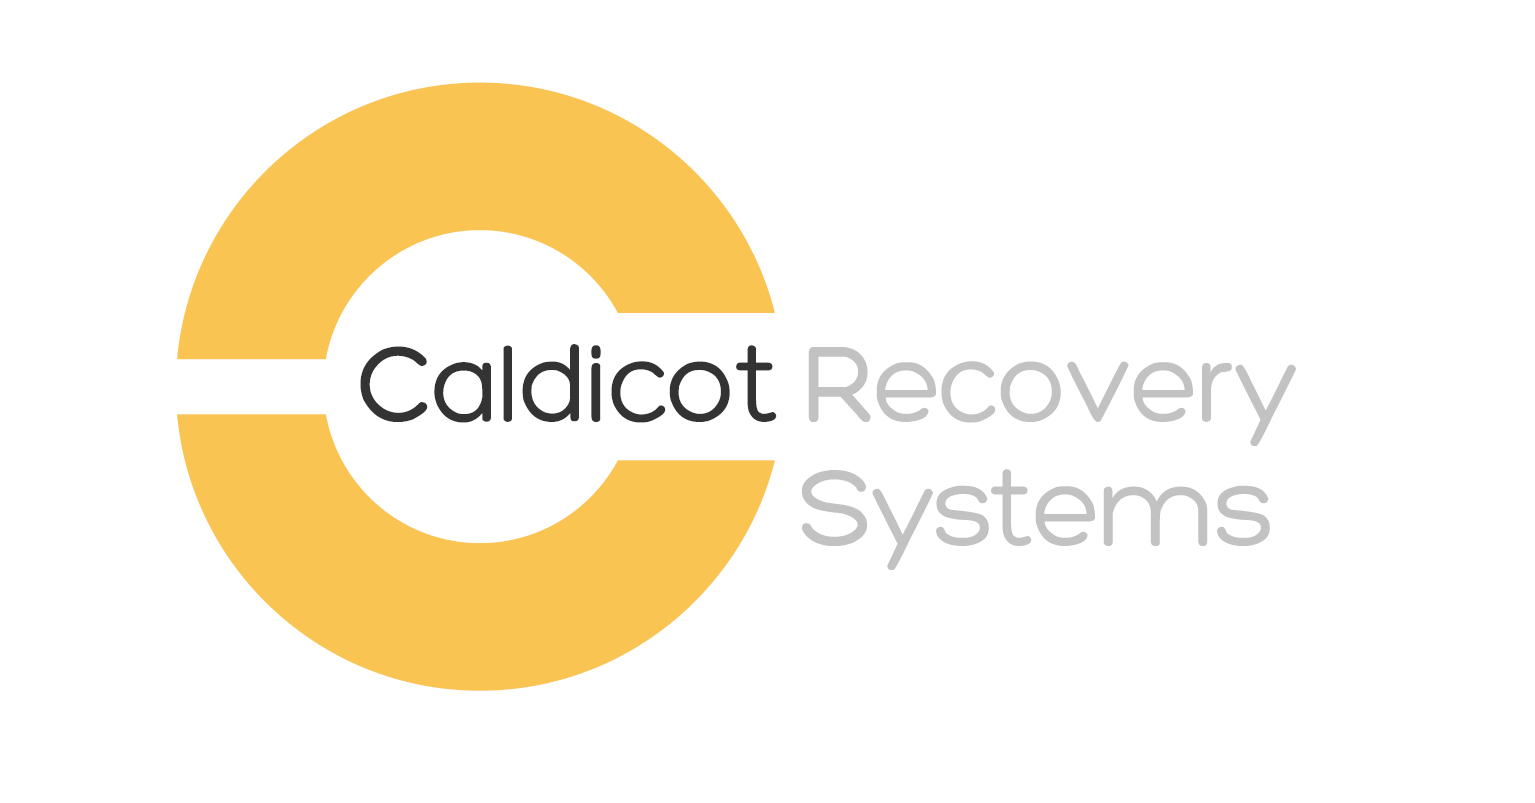 Caldicot Recovery Systems logo FINAL.jpg